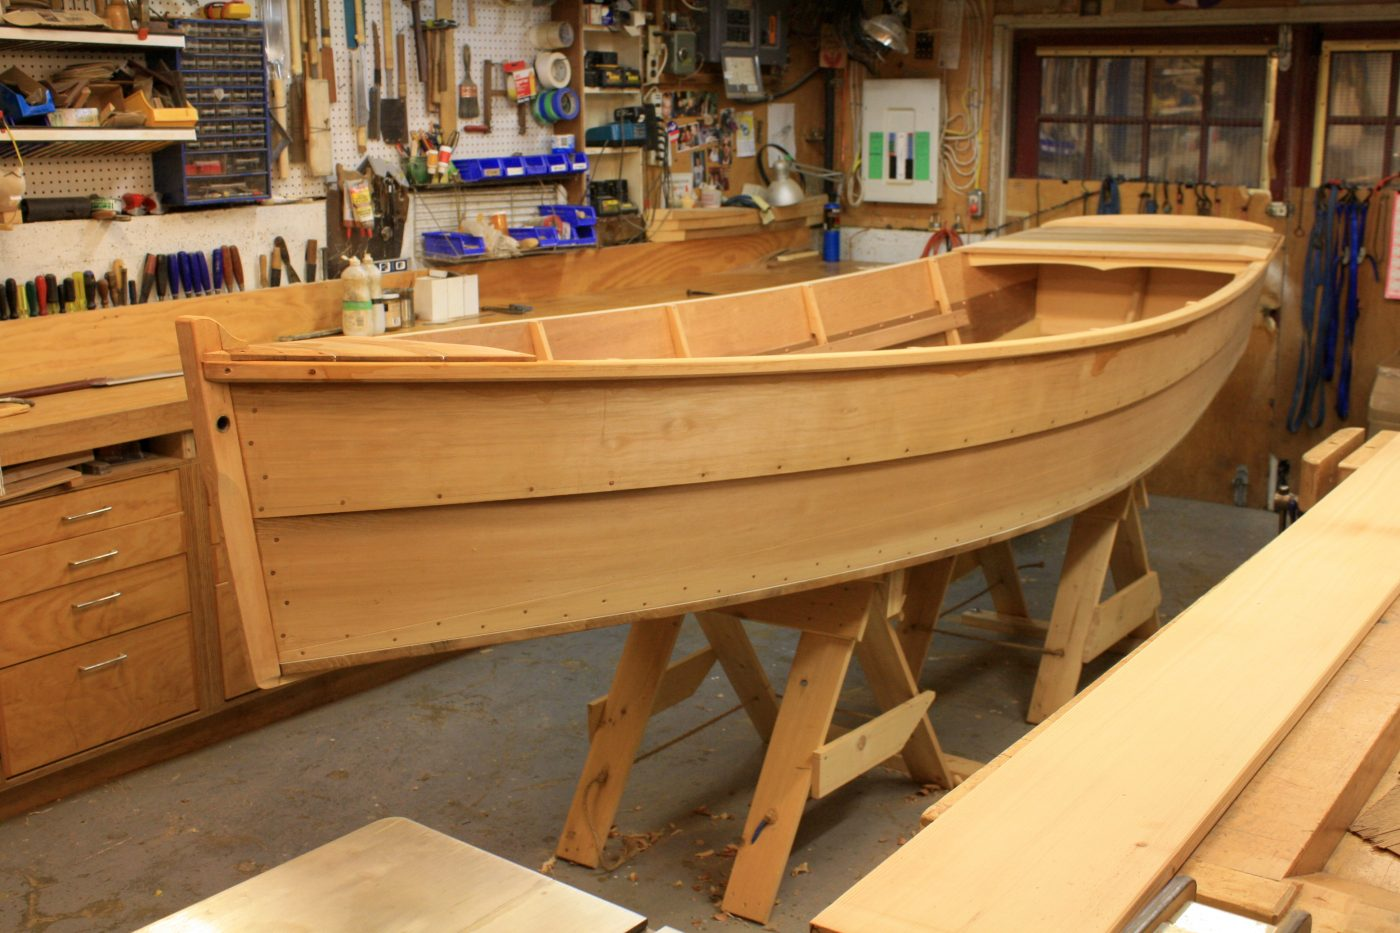 Fisgard Skiff under construction